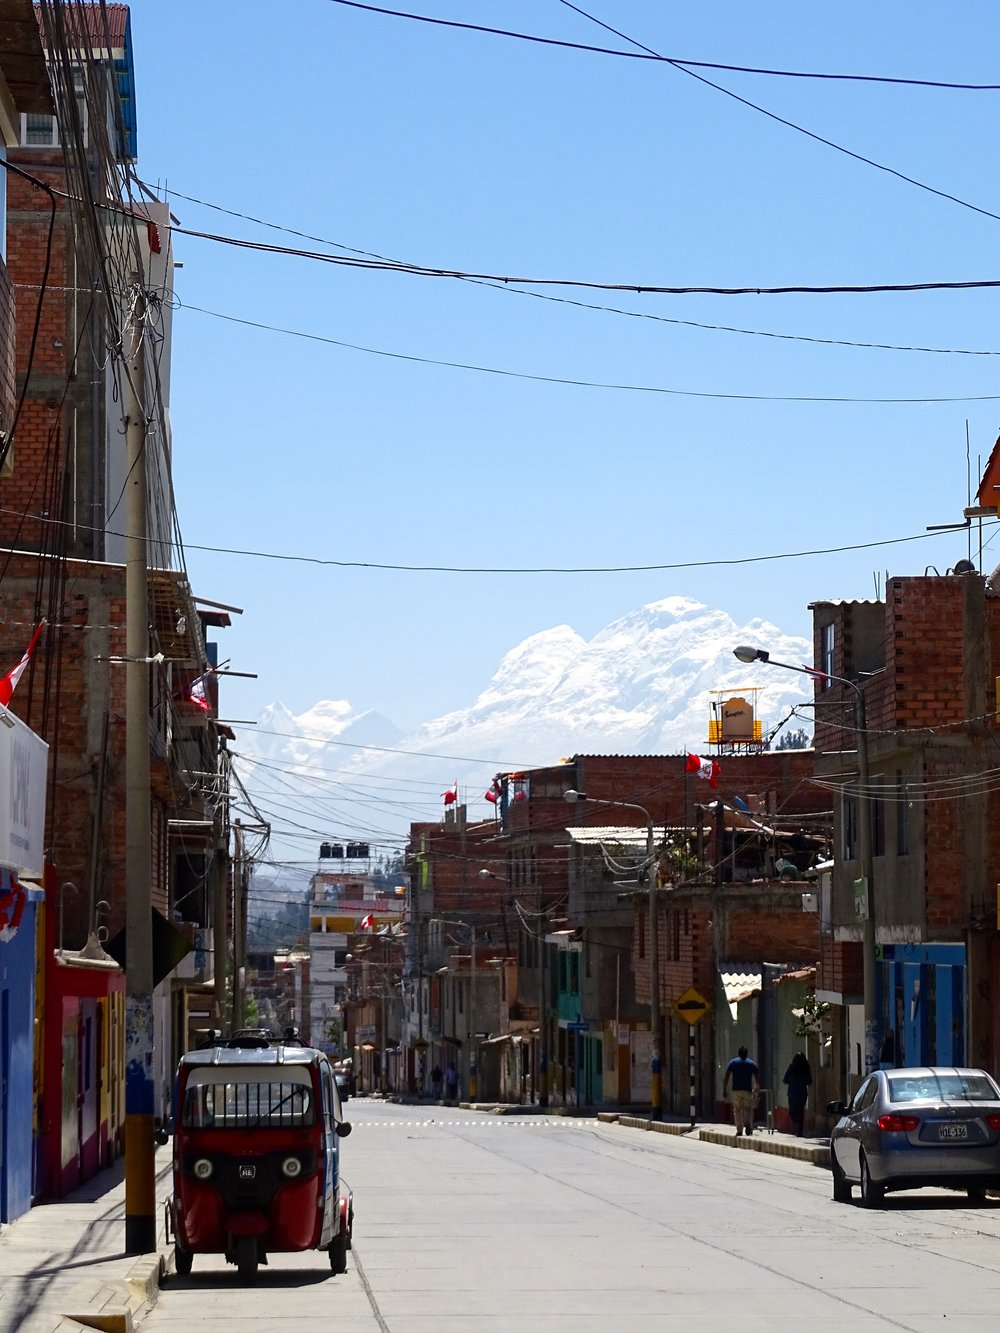 The backdrop of the Cordillera Blanca down many streets was stunning.